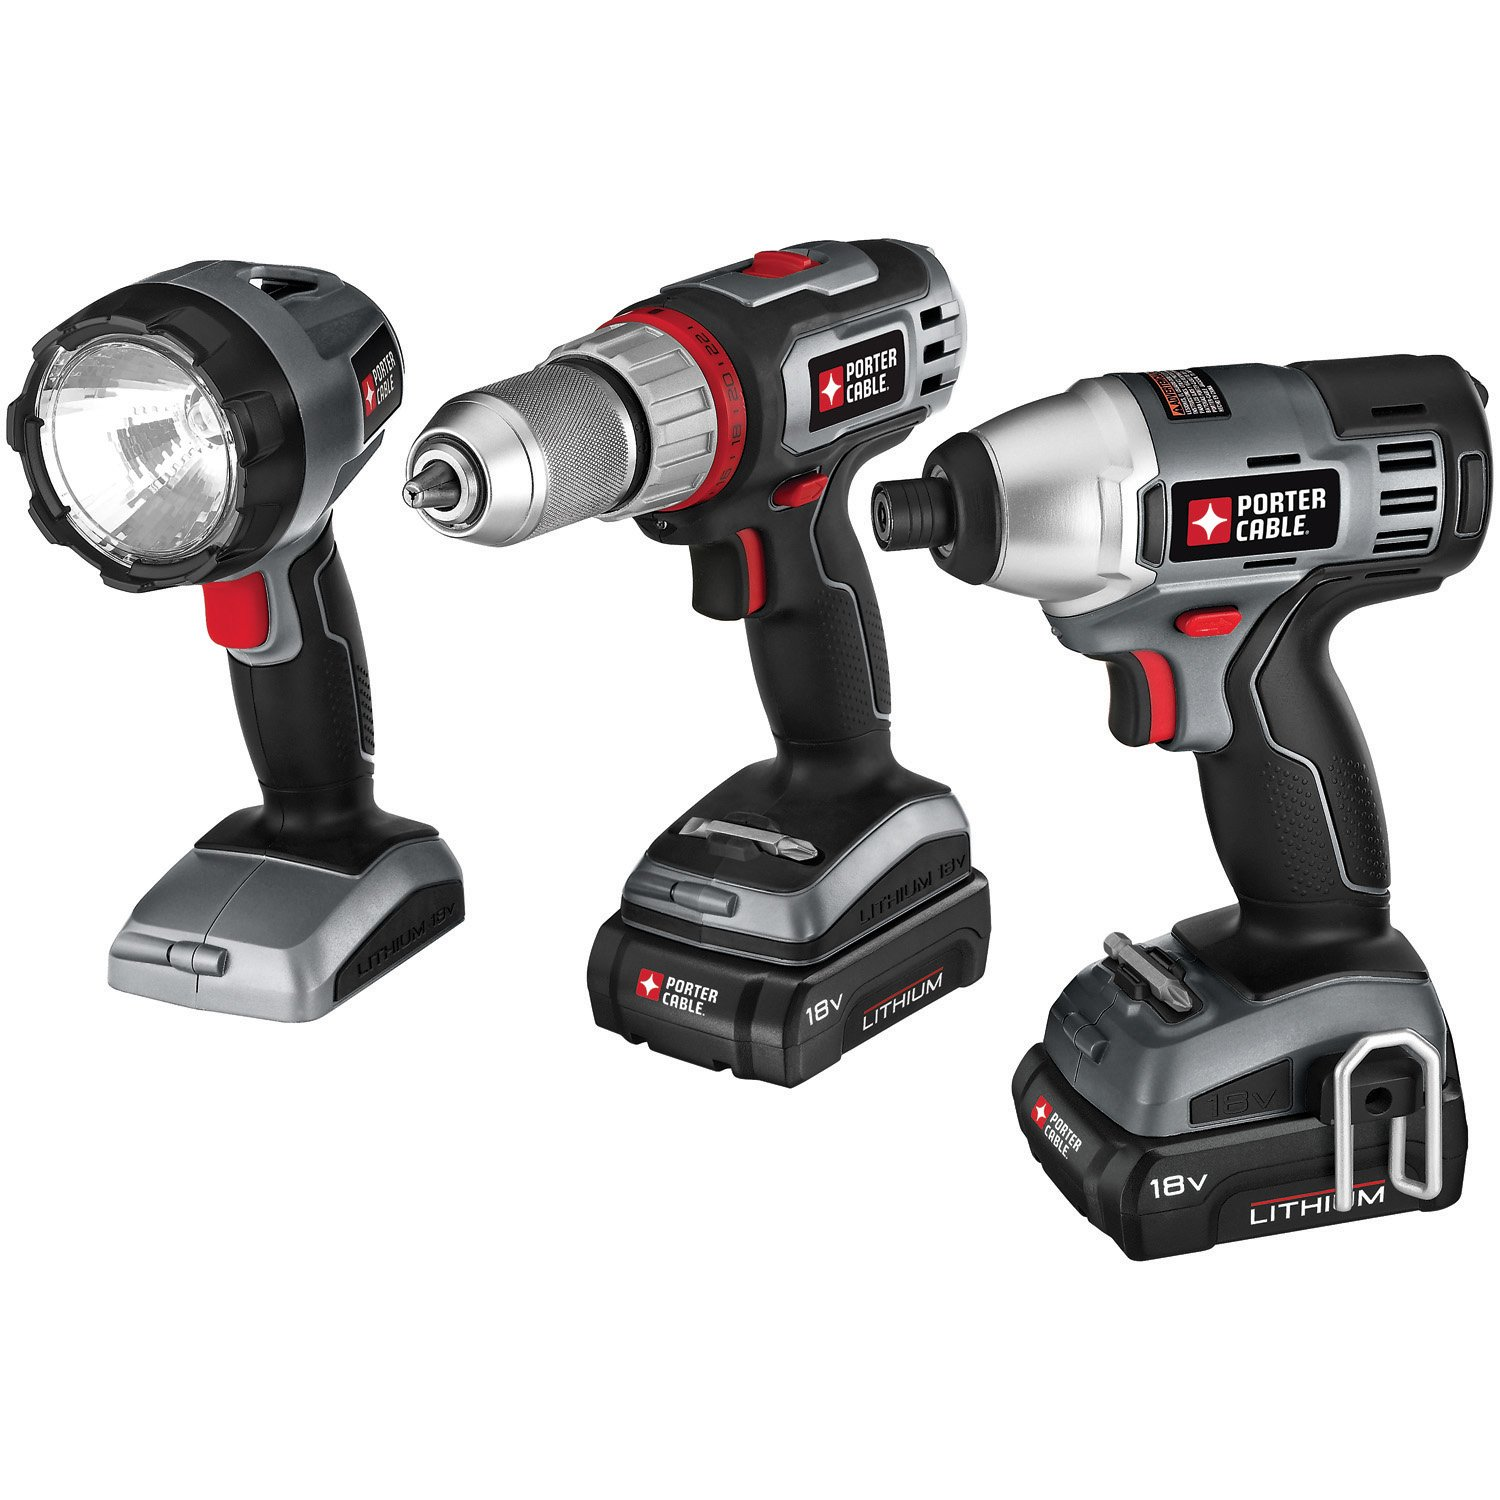 porter cable power tools. porter-cable pcl318idc-2 18-volt lithium-ion cordless 3-piece combo kit - power tool packs amazon.com porter cable tools